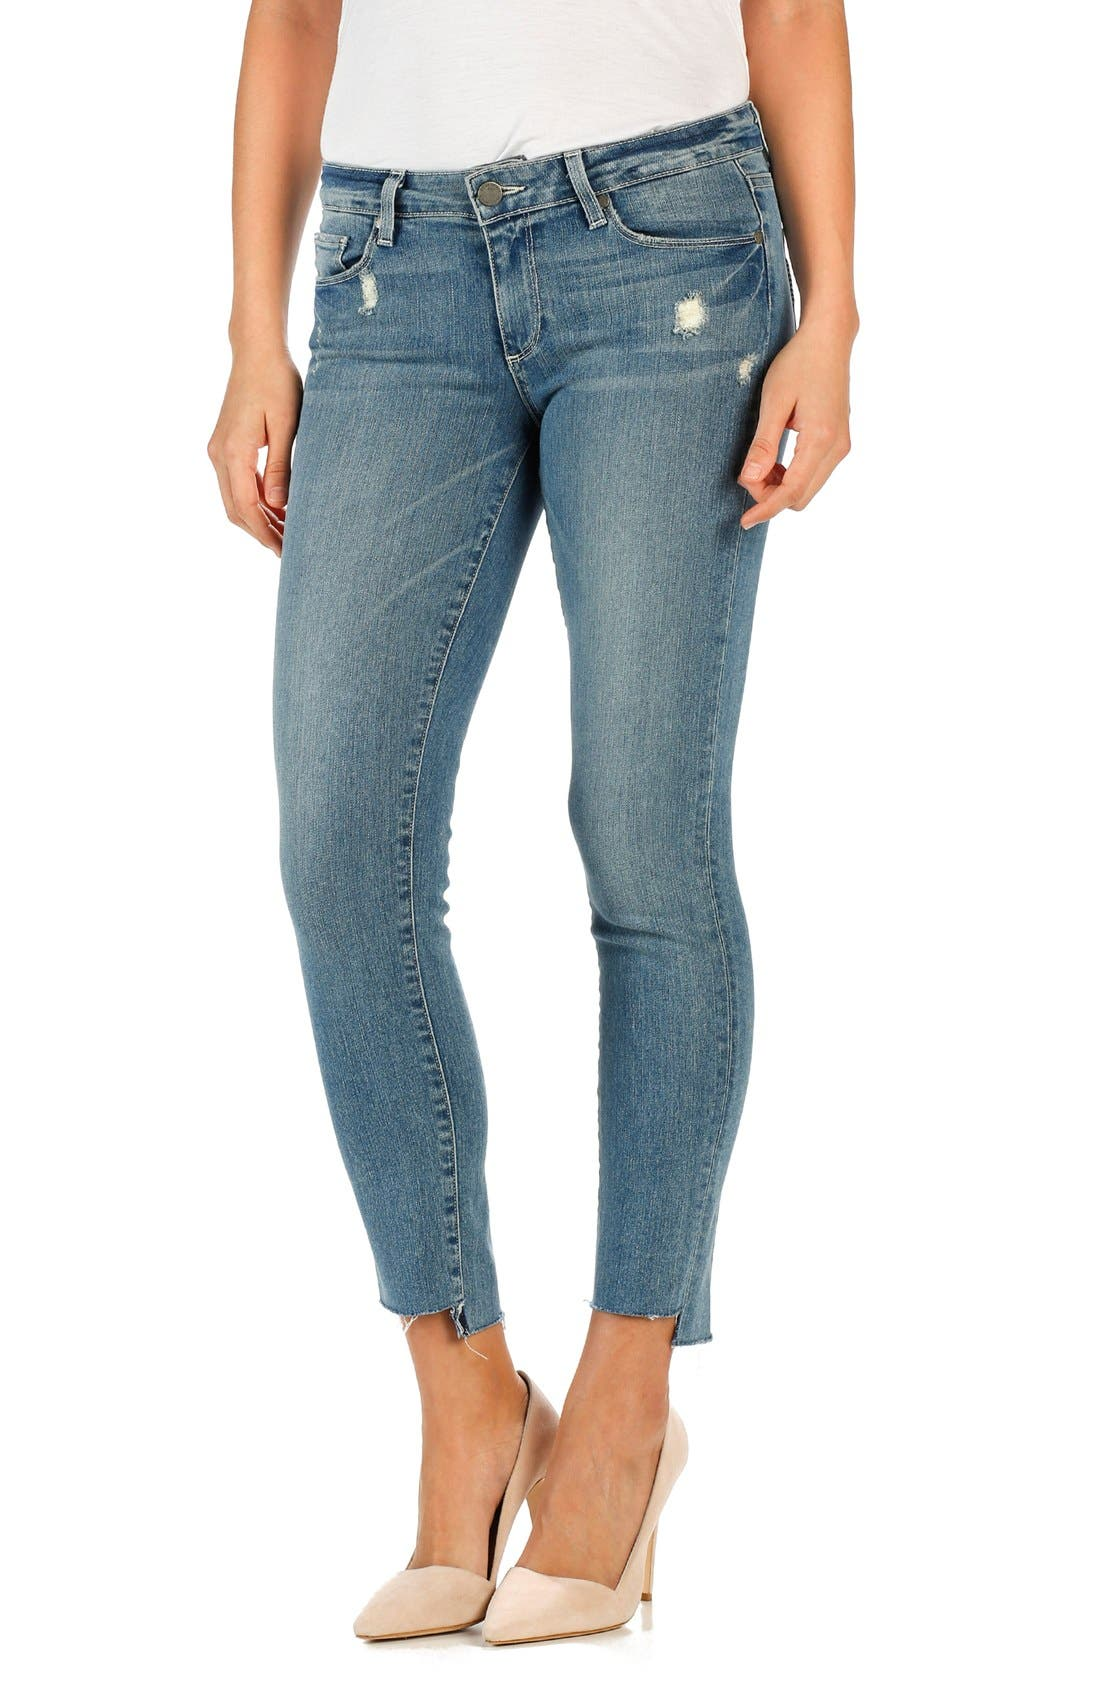 Alternate Image 1 Selected - PAIGE 'Skyline' Cutoff Ankle Peg Skinny Jeans (Wiley)